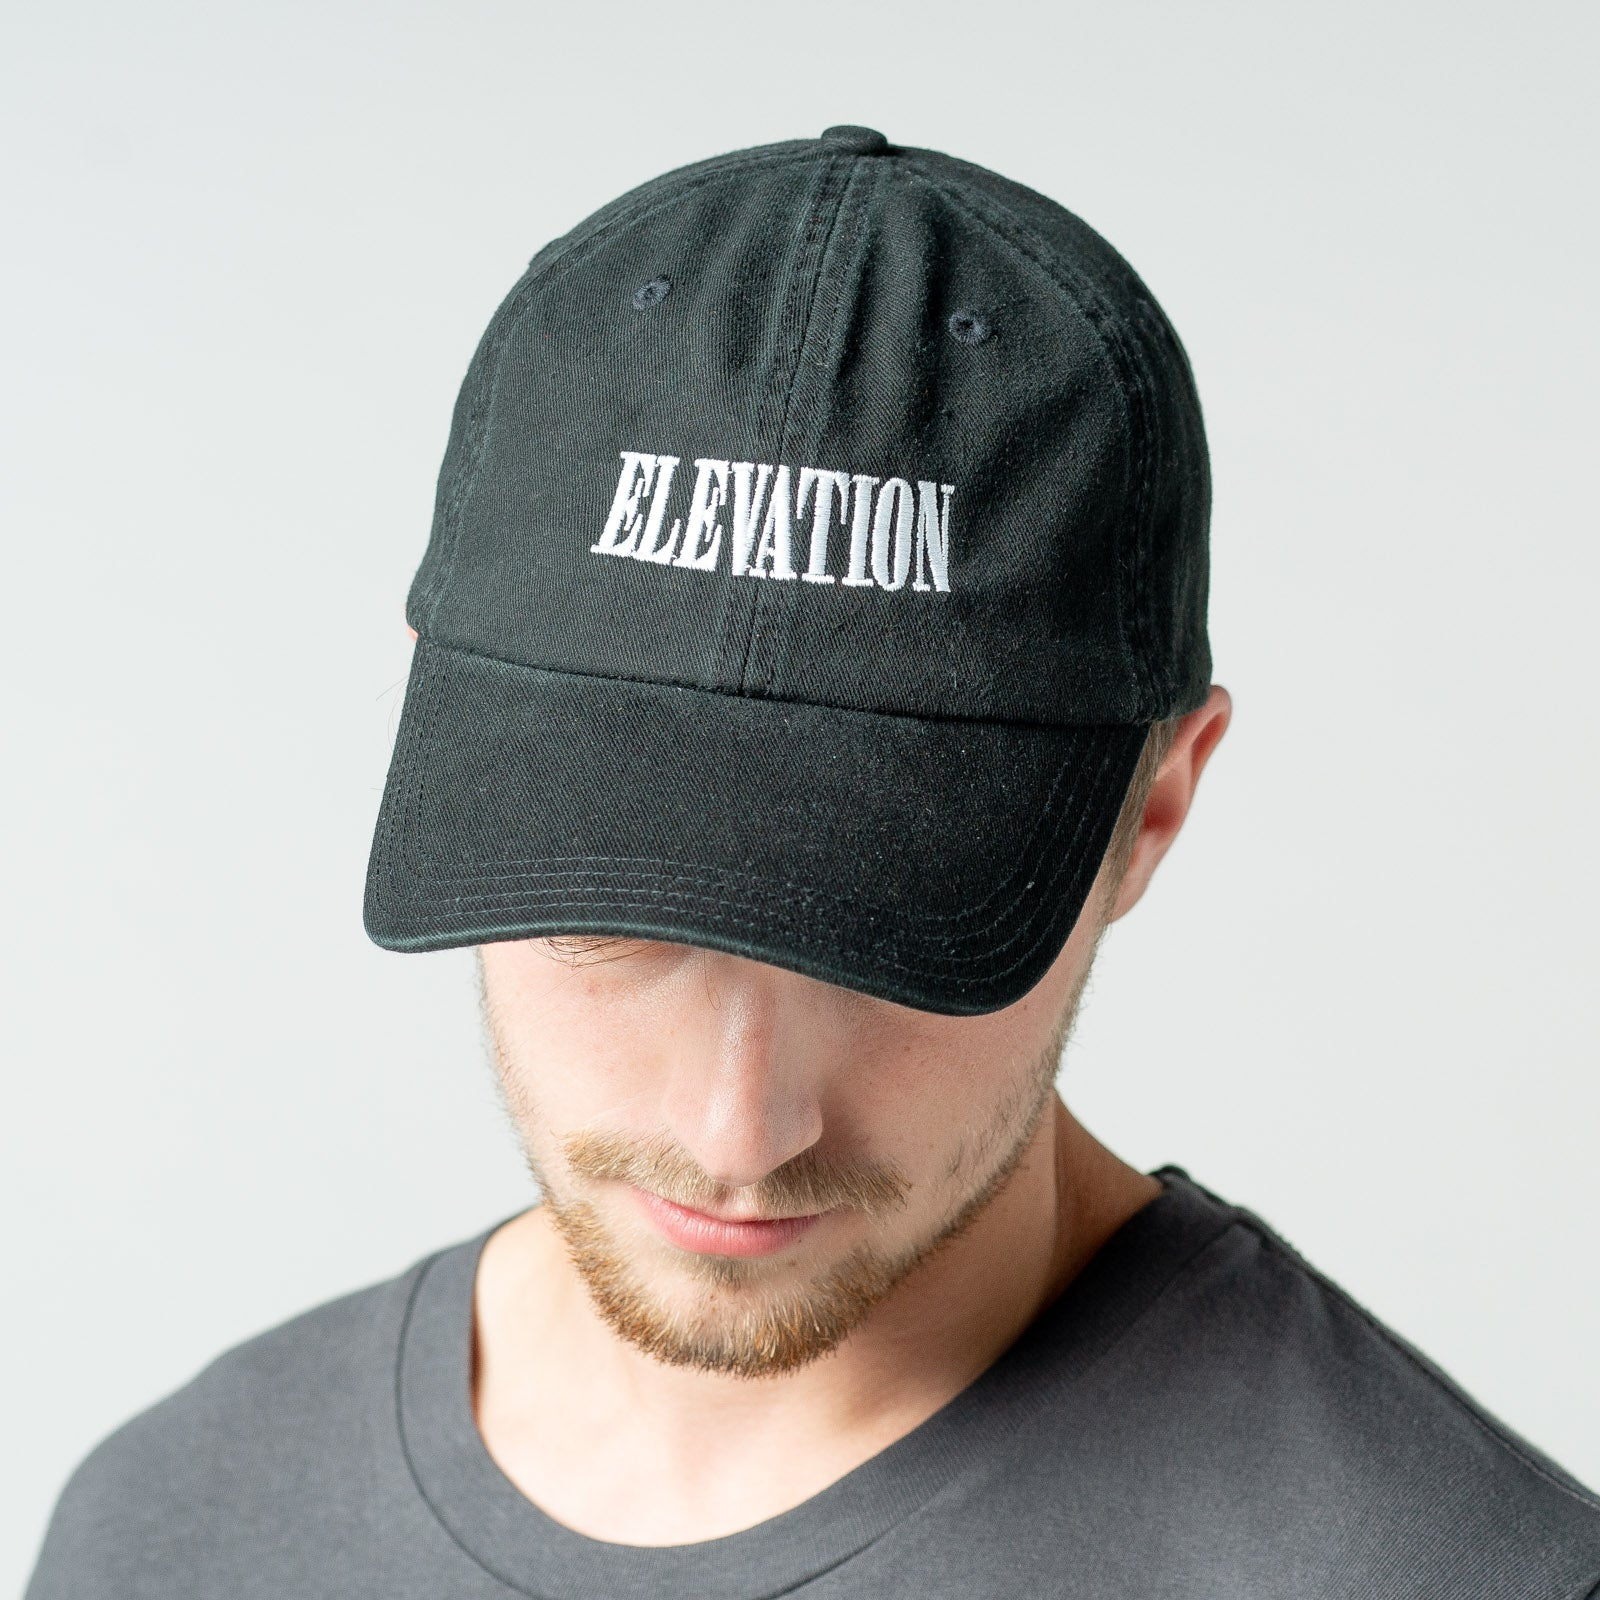 'Elevation' embroidered hat